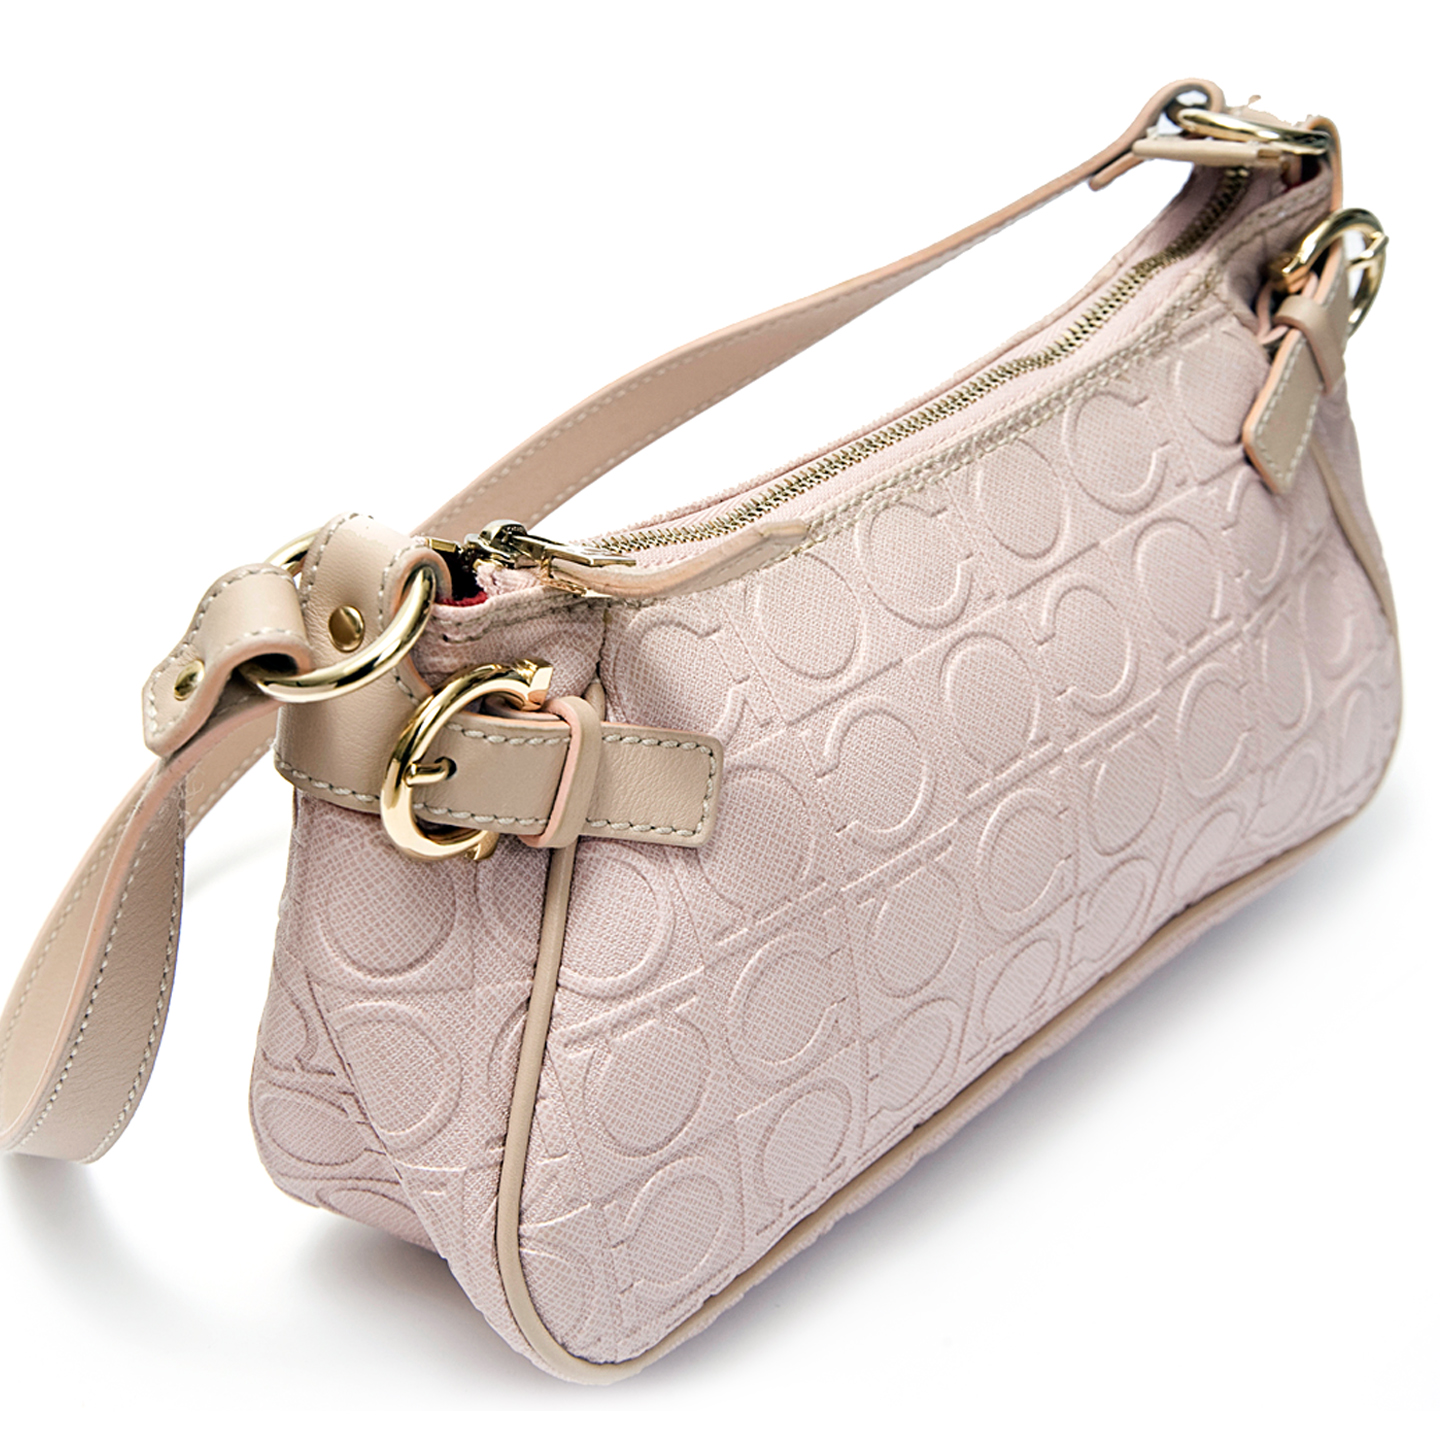 Salvatore Ferragamo Pink Logo Embossed Leather Bag - LabelCentric 7afbe243c6